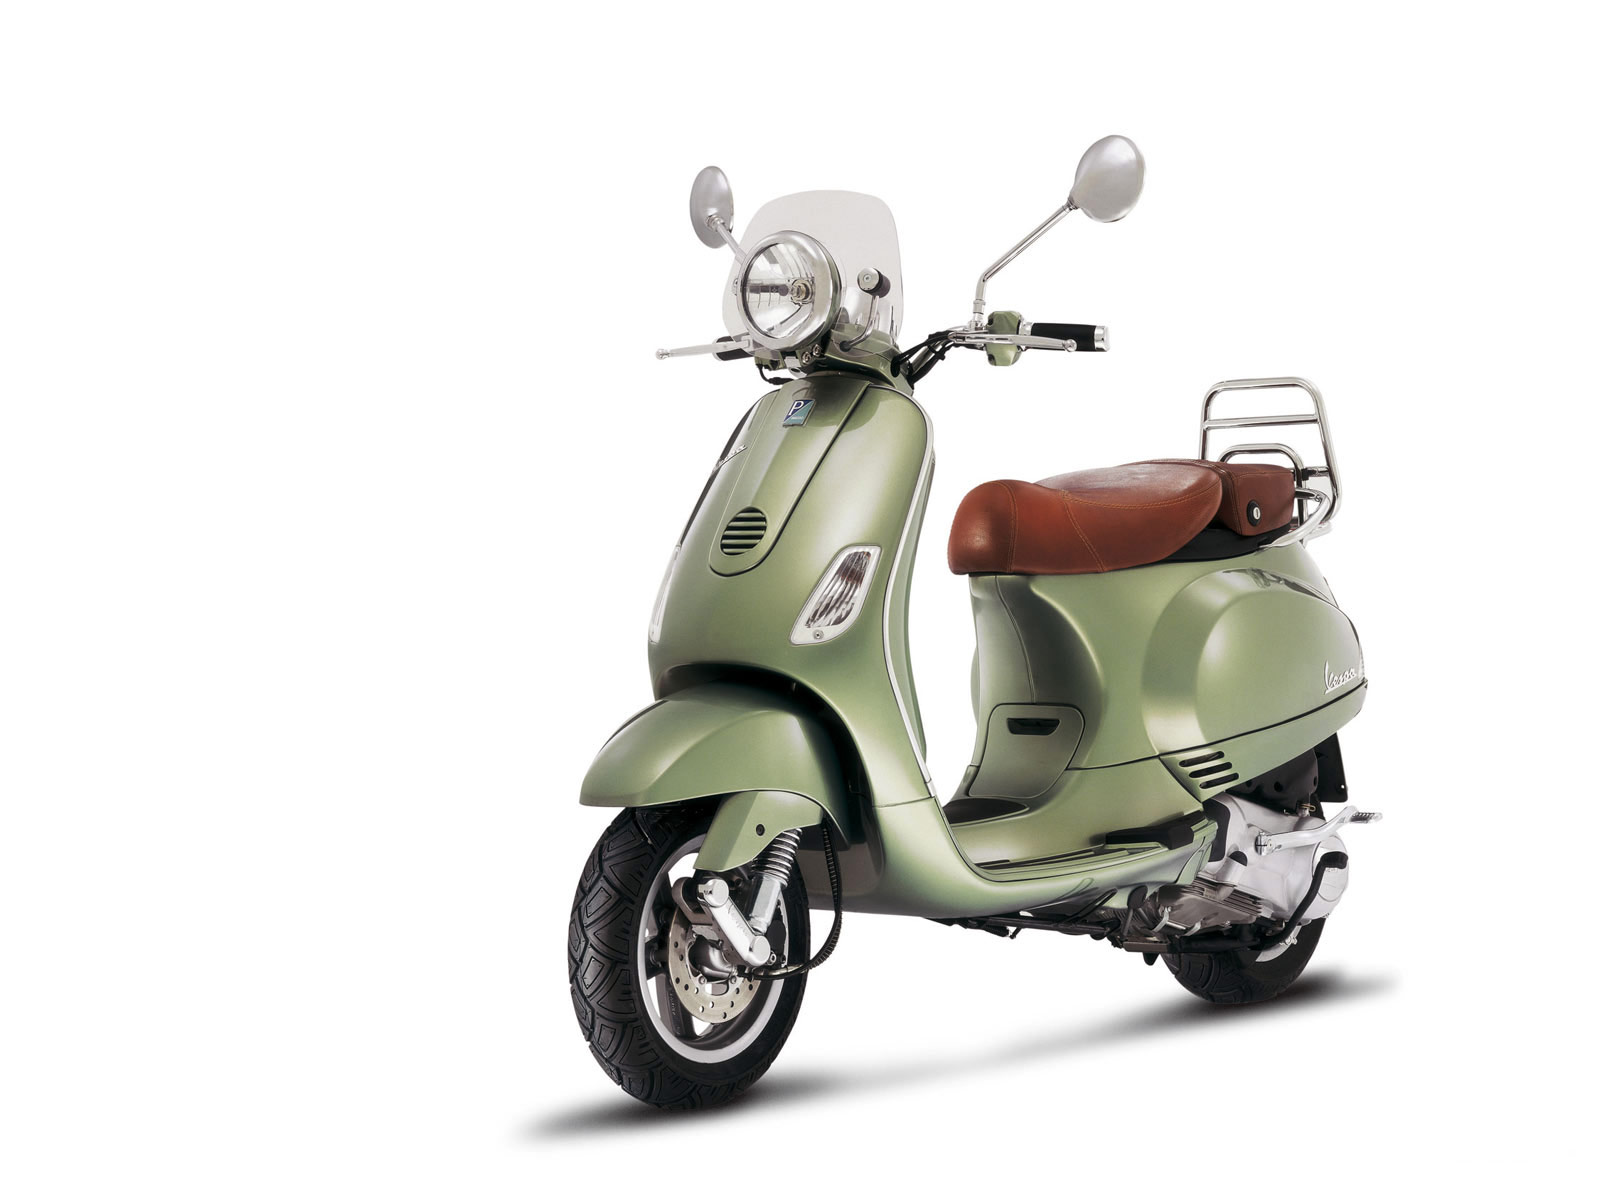 Automatic Transmission Motorcycle >> Insurance information. VESPA LXV125 Scooter Pictures 2007